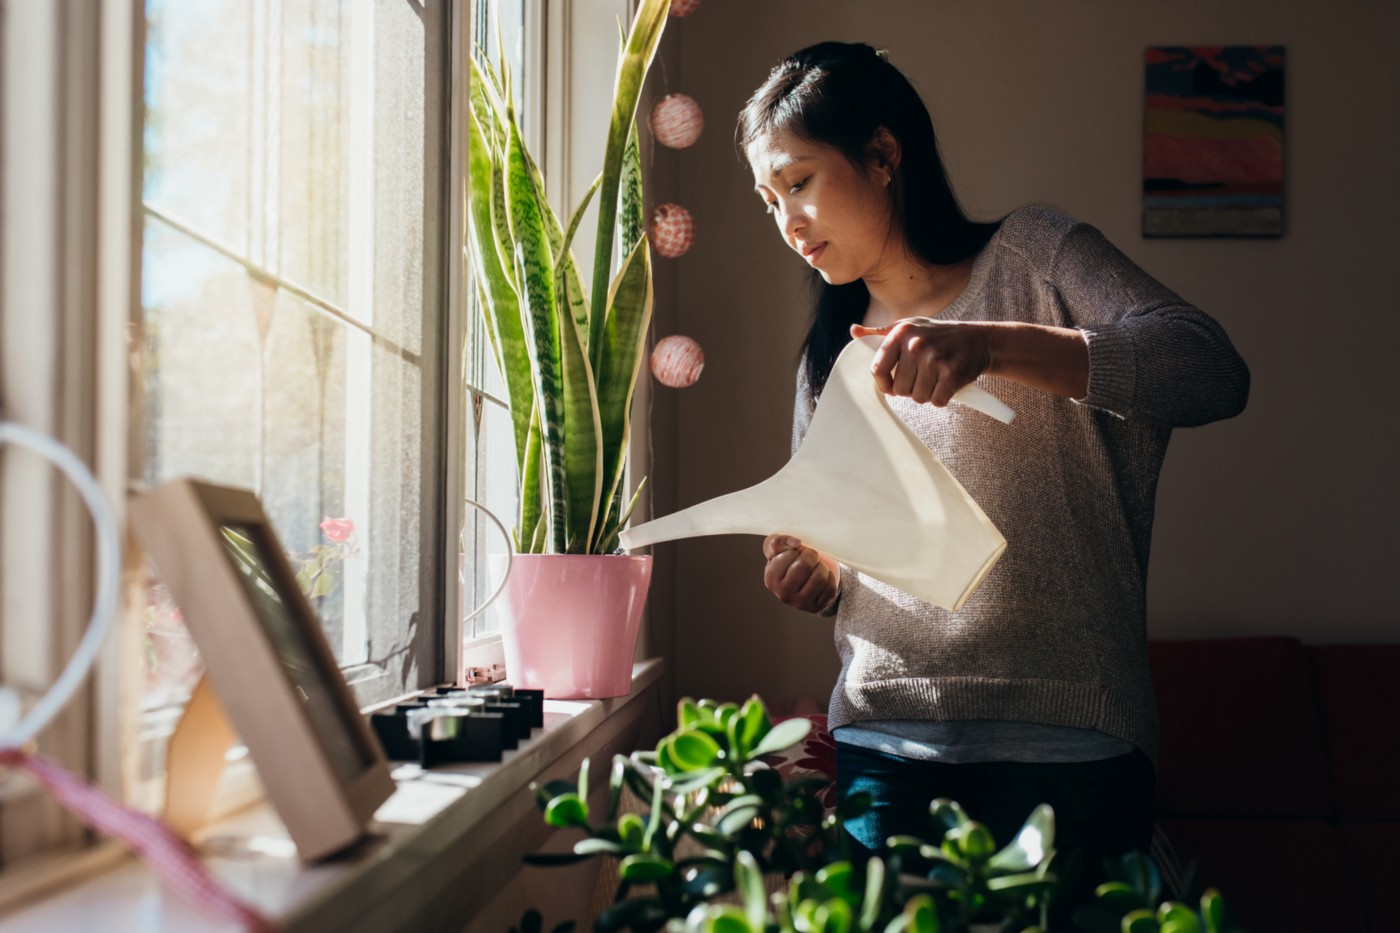 A photo of an Asian woman watering plants on her windowsill at home.